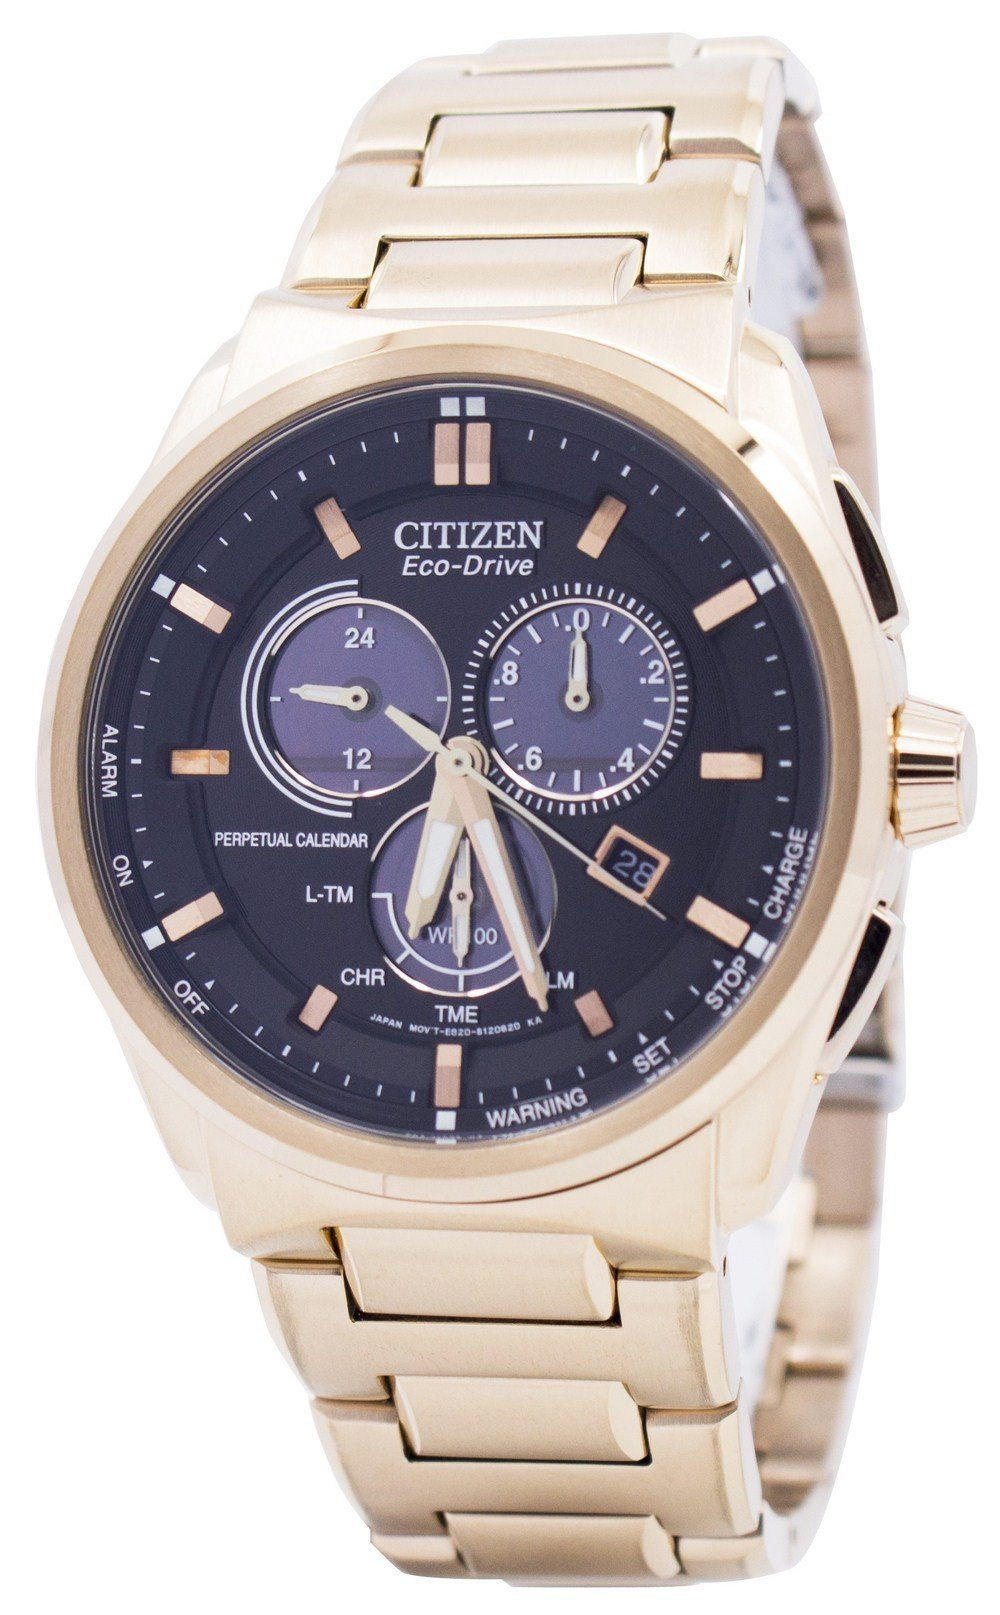 Citizen Eco-Drive Perpetual Calendar BL5483-55E Men's Watch